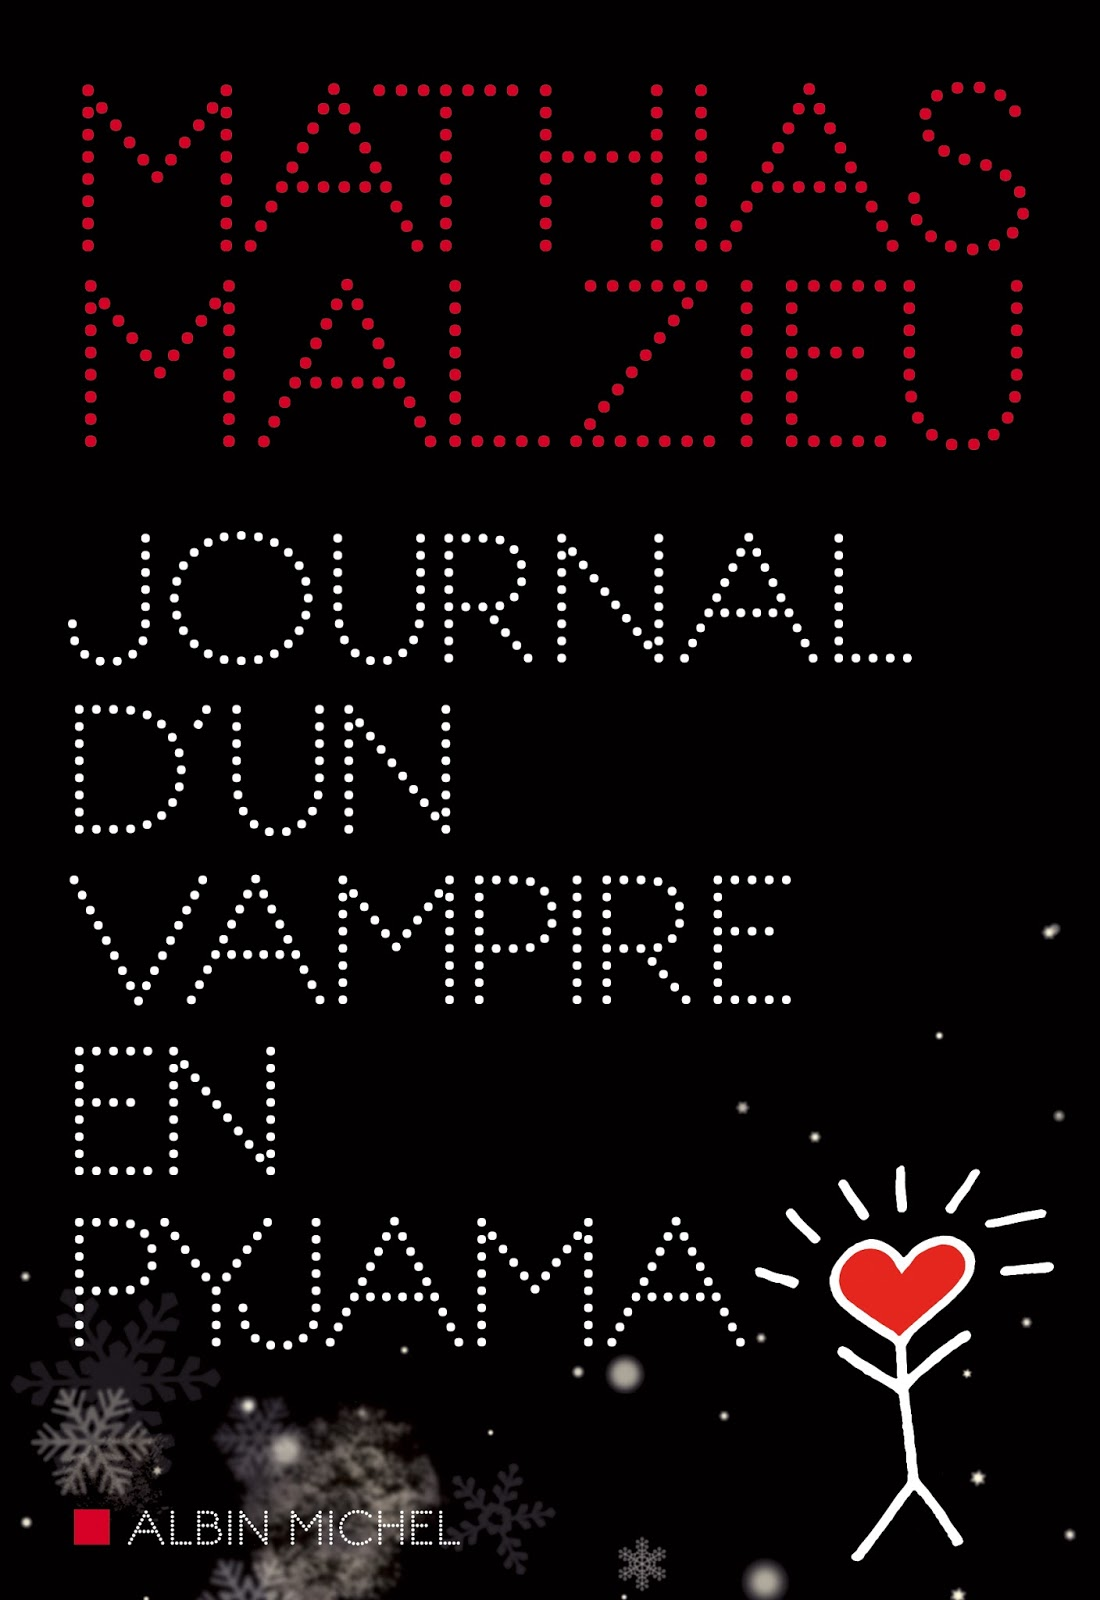 ♥ Journal d'un vampire en pyjama, de Mathias Malzieu